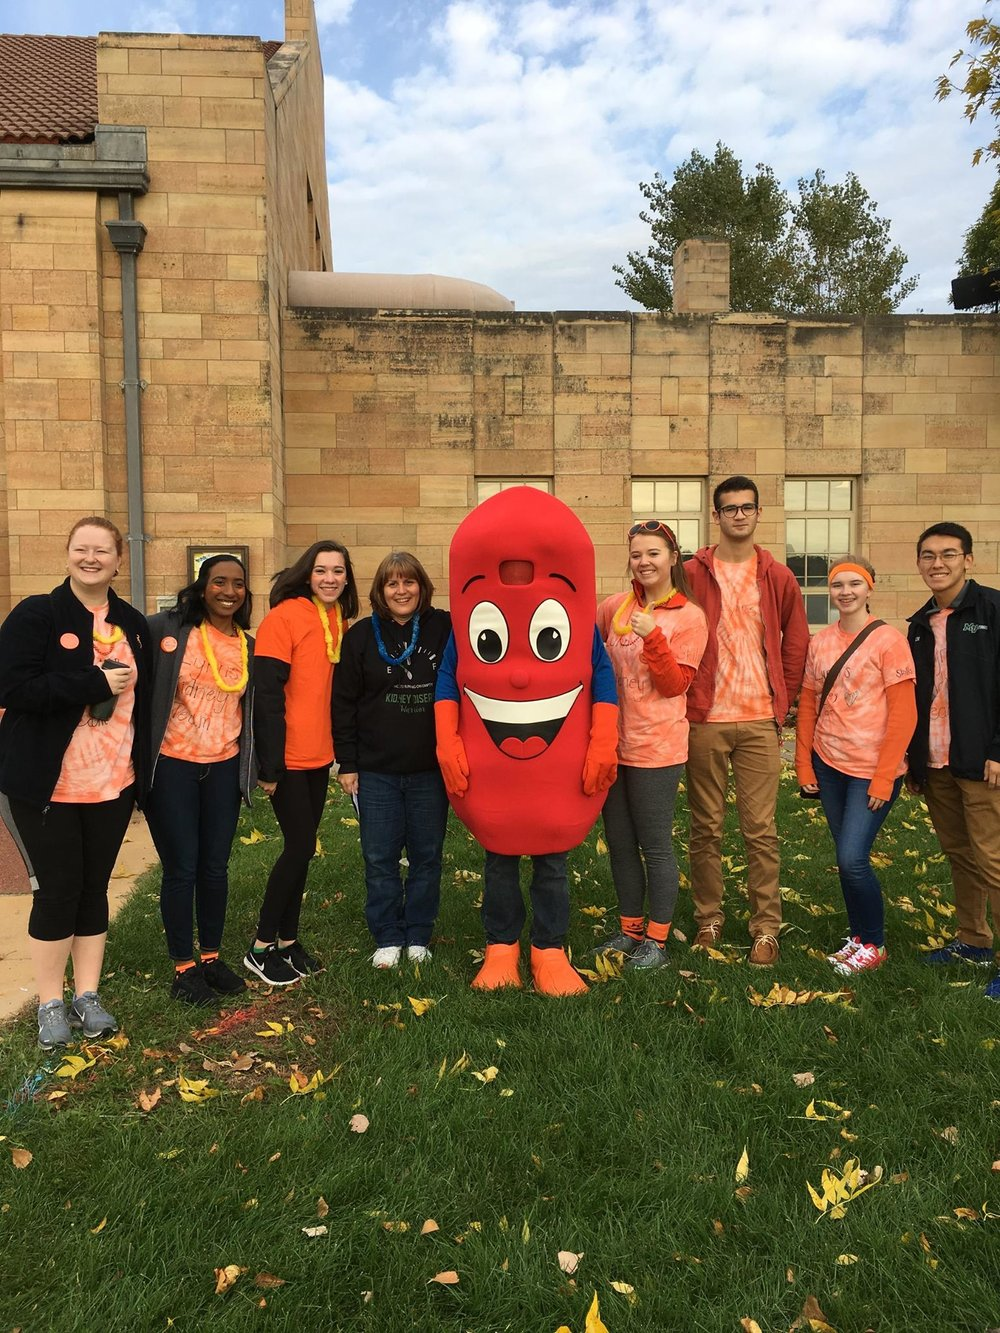 Lynn Nelson Group with Kidney Mascot.jpg